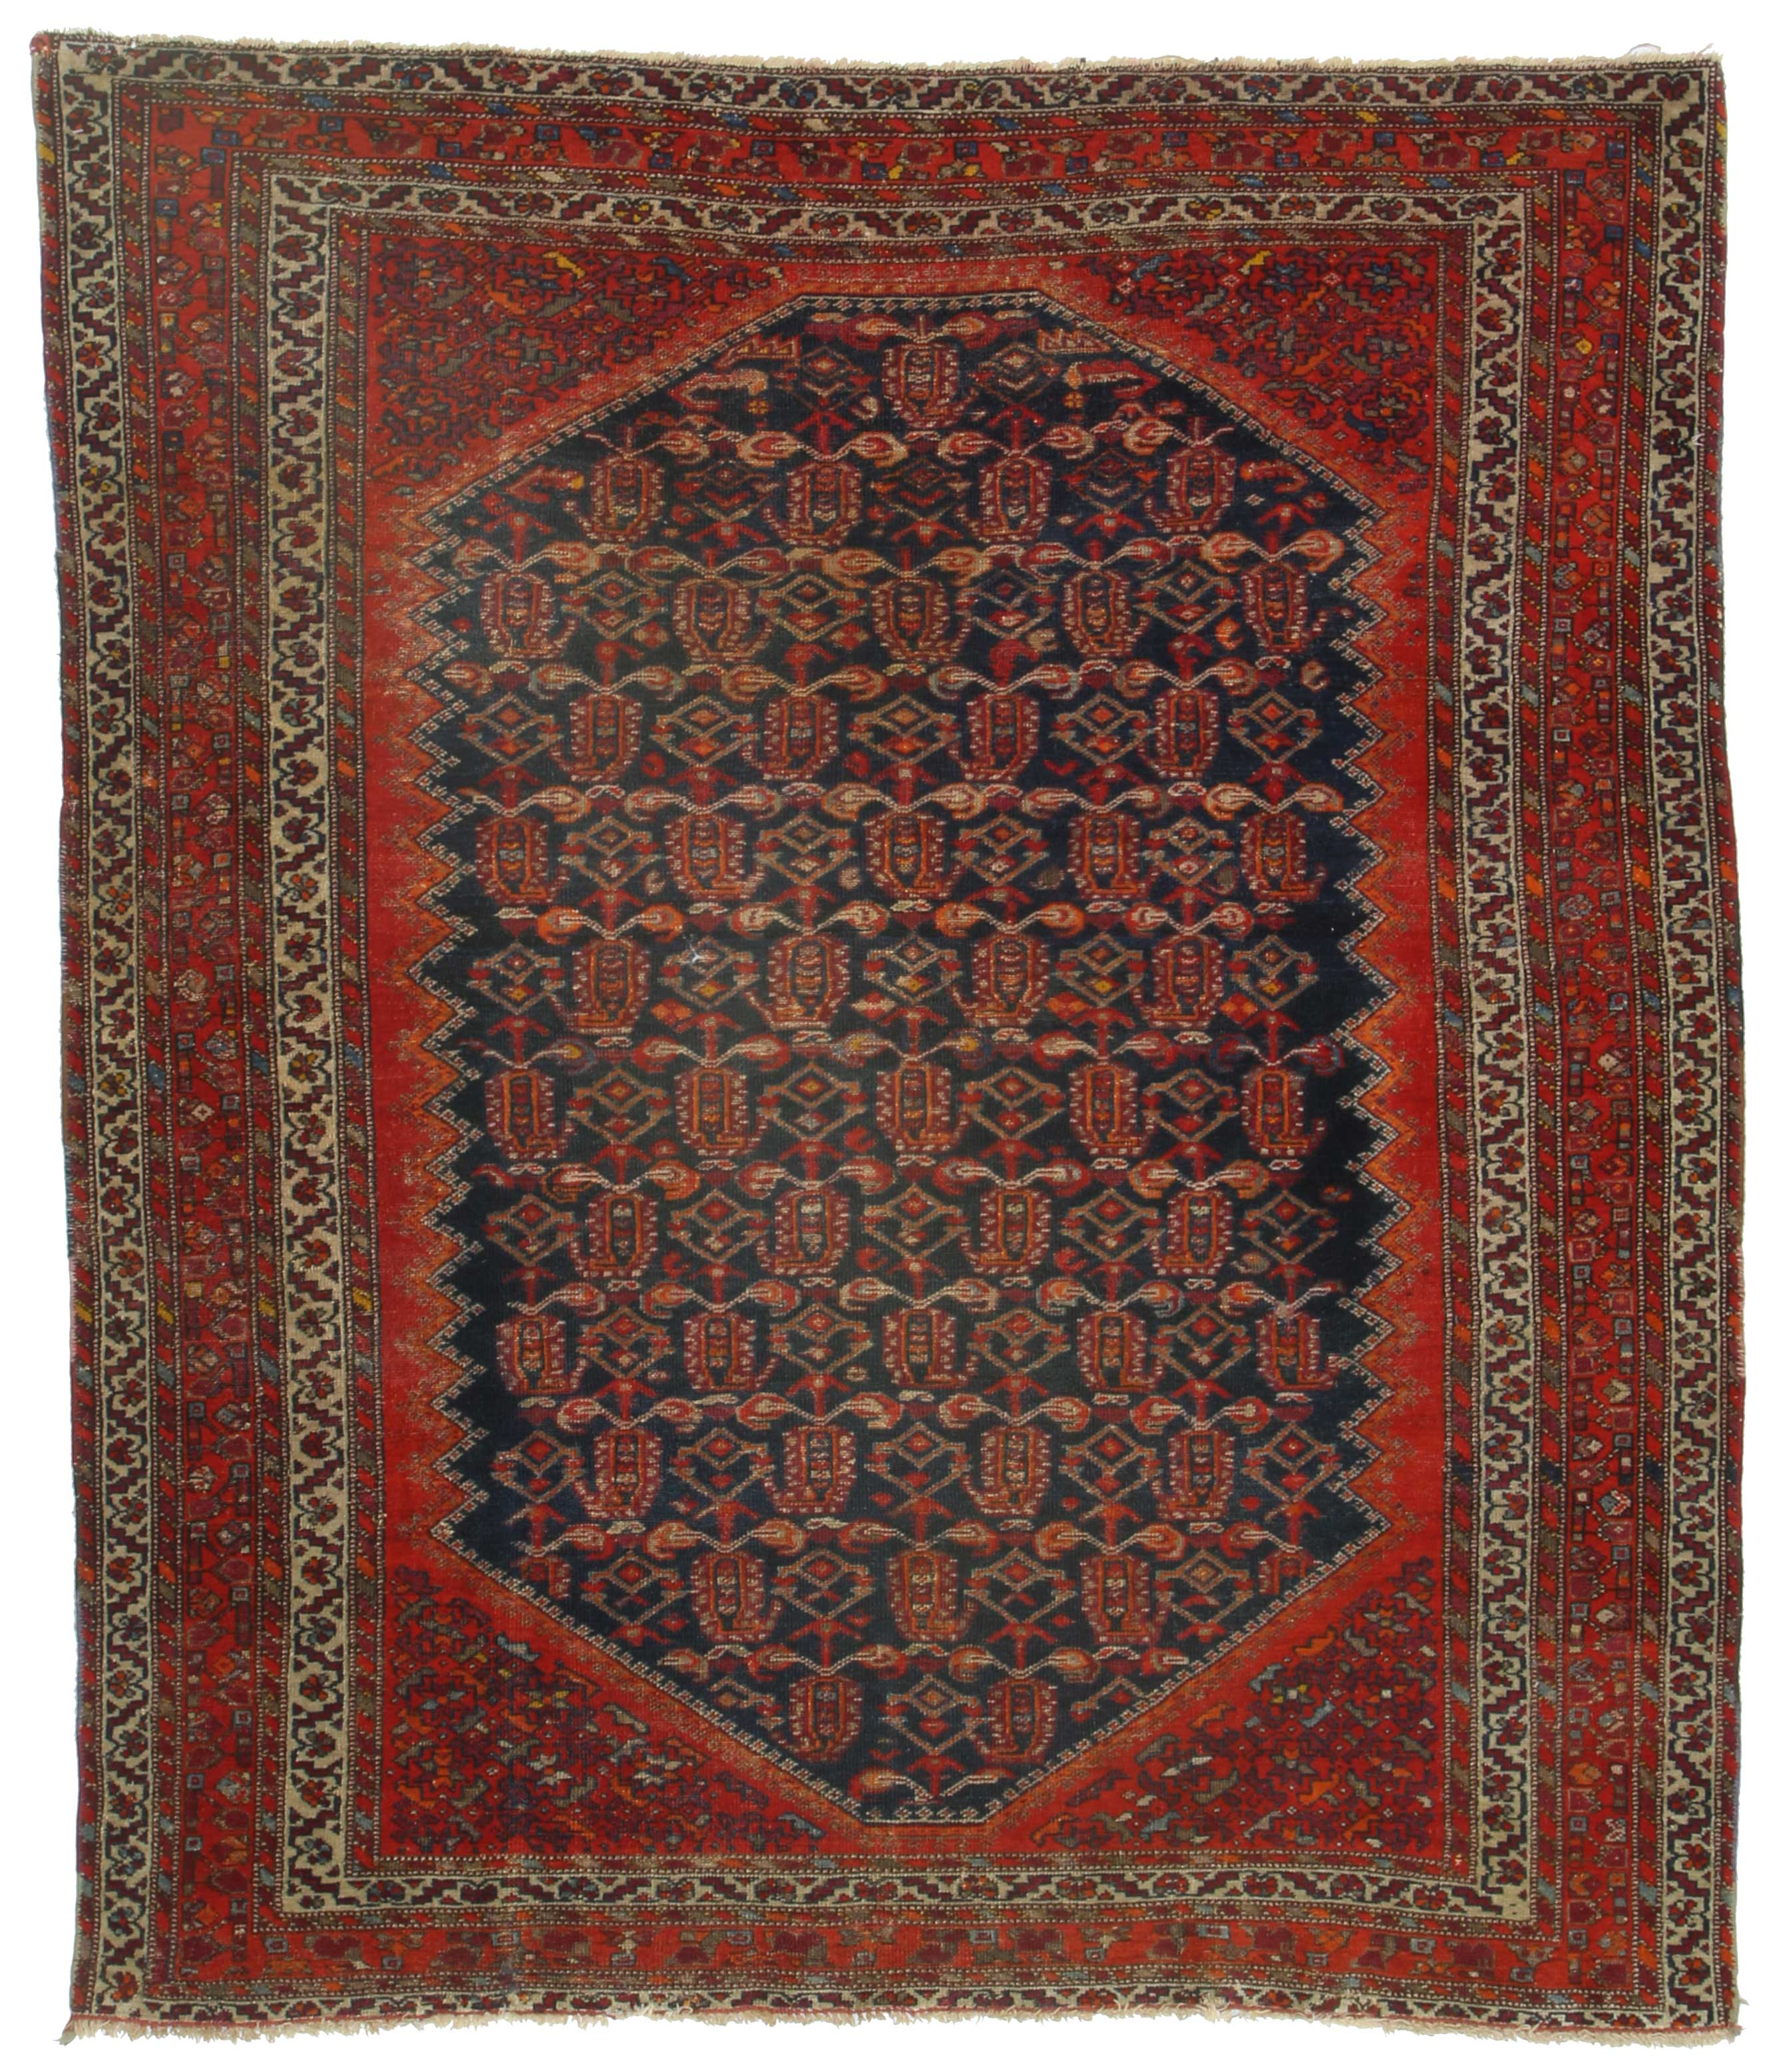 5 X 5 Antique Persian Malayer Rug 11059 Exclusive